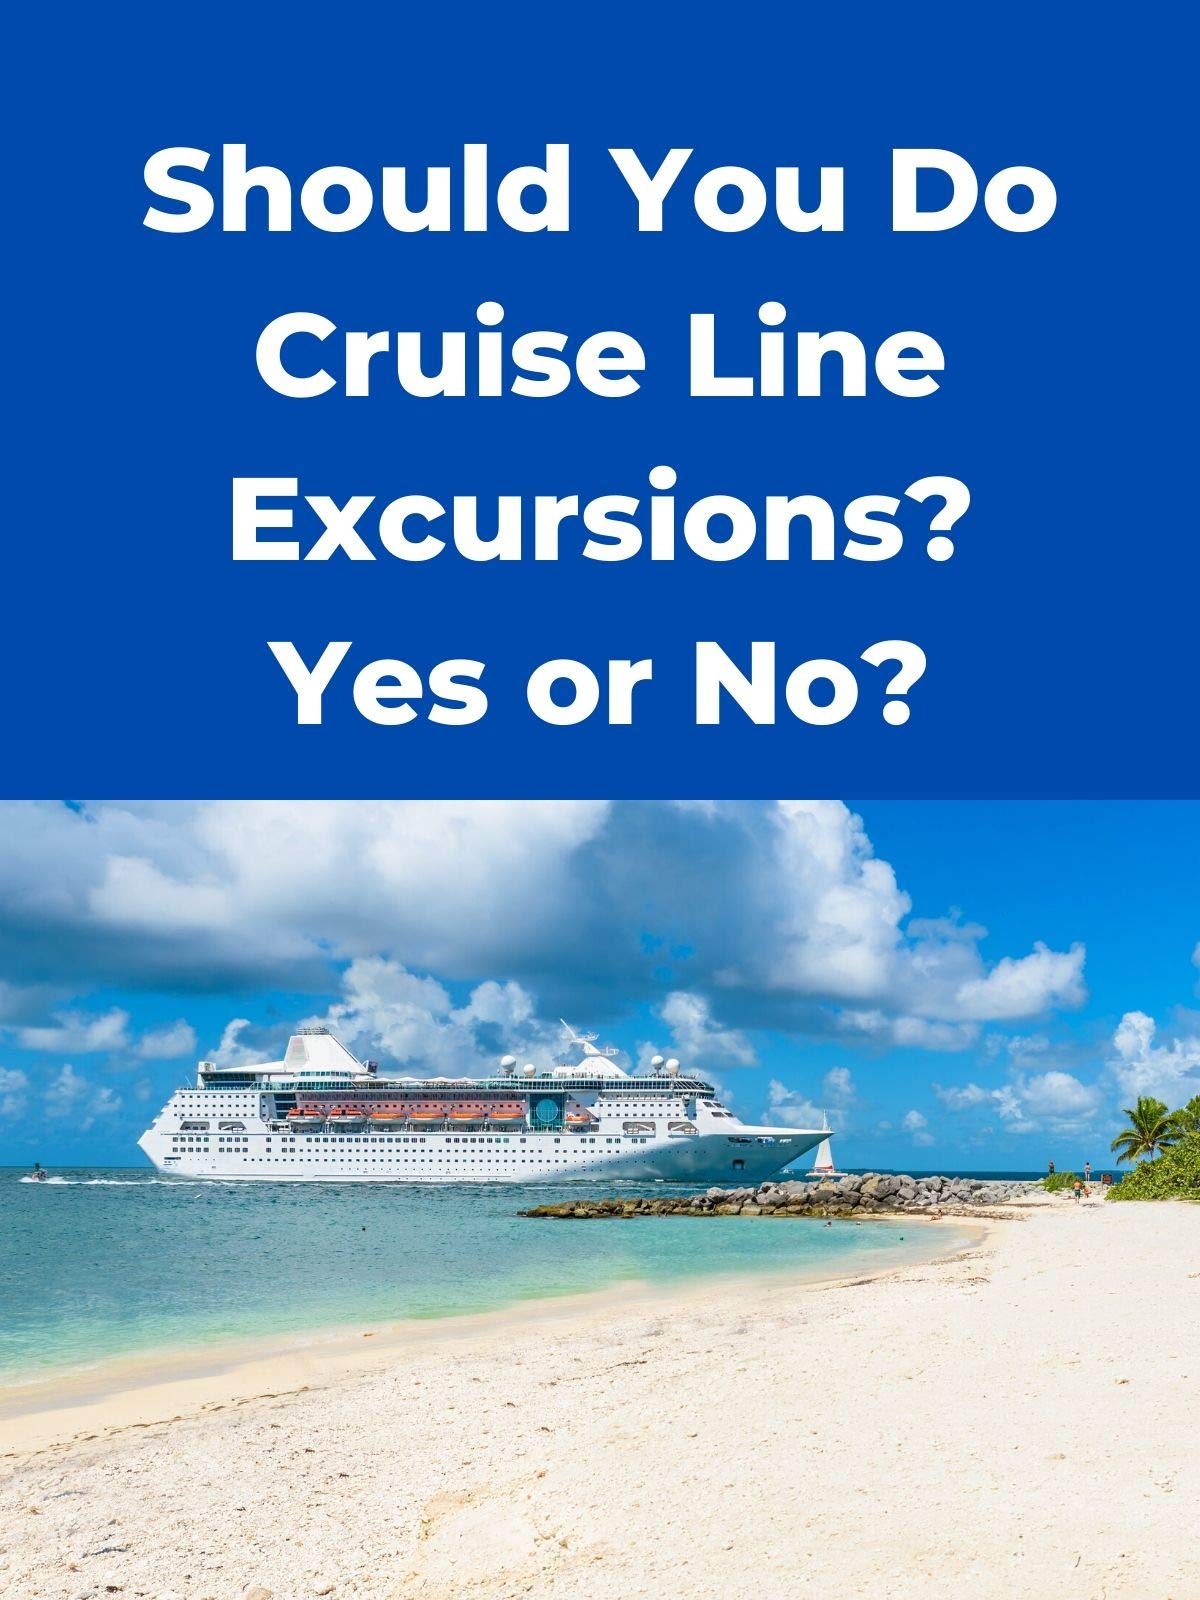 Clip: Should You Do Cruise Line Excursions? Yes or No?